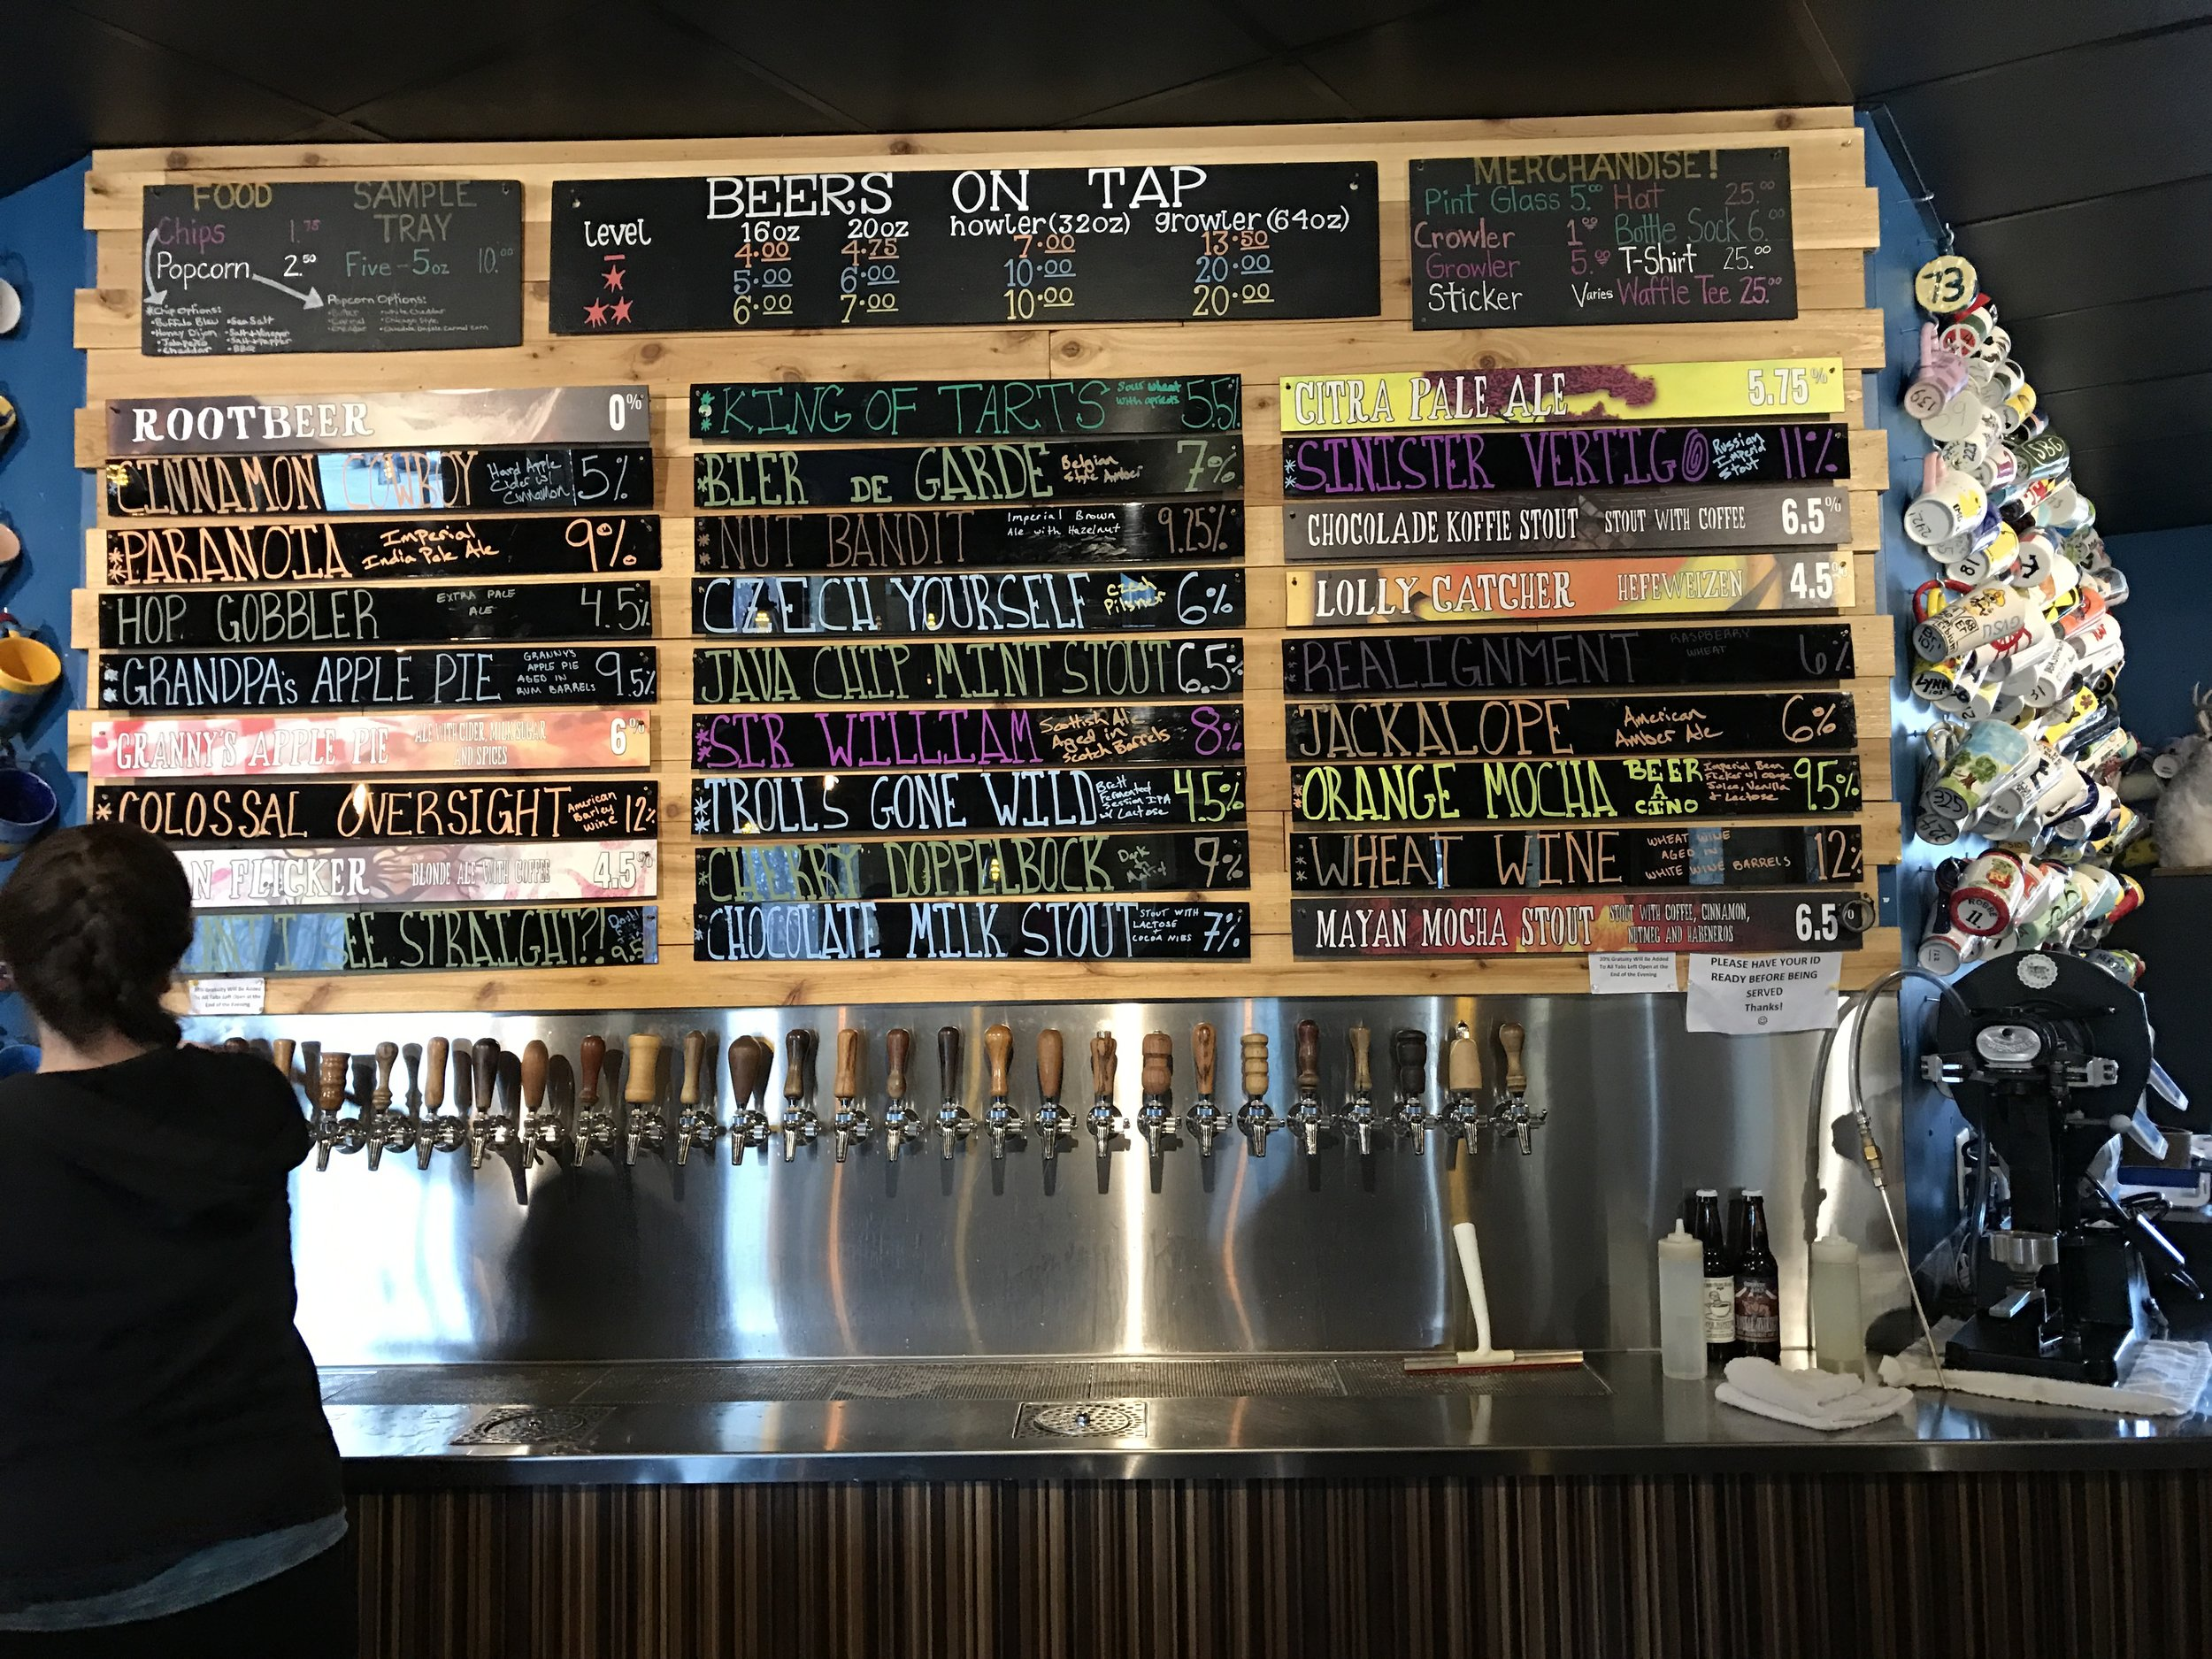 This pic is from my trip to Oddside Ales in Grand Haven, MI